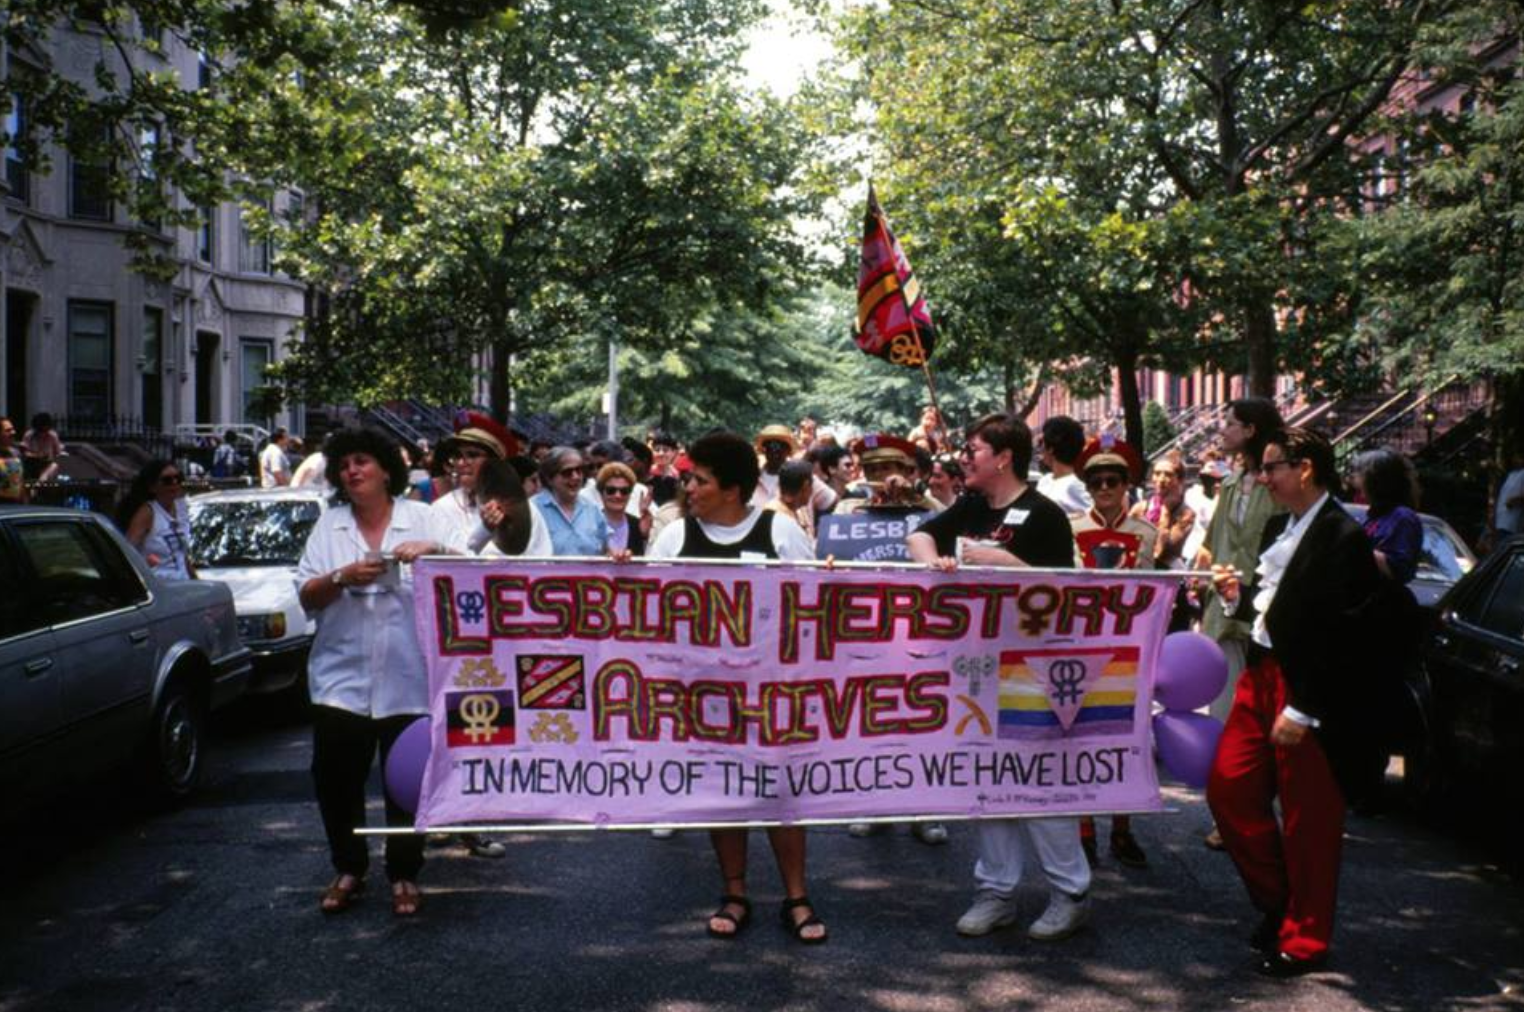 A gal-dem Herstory Lesson:  Brooklyn's Lesbian Herstory Archives